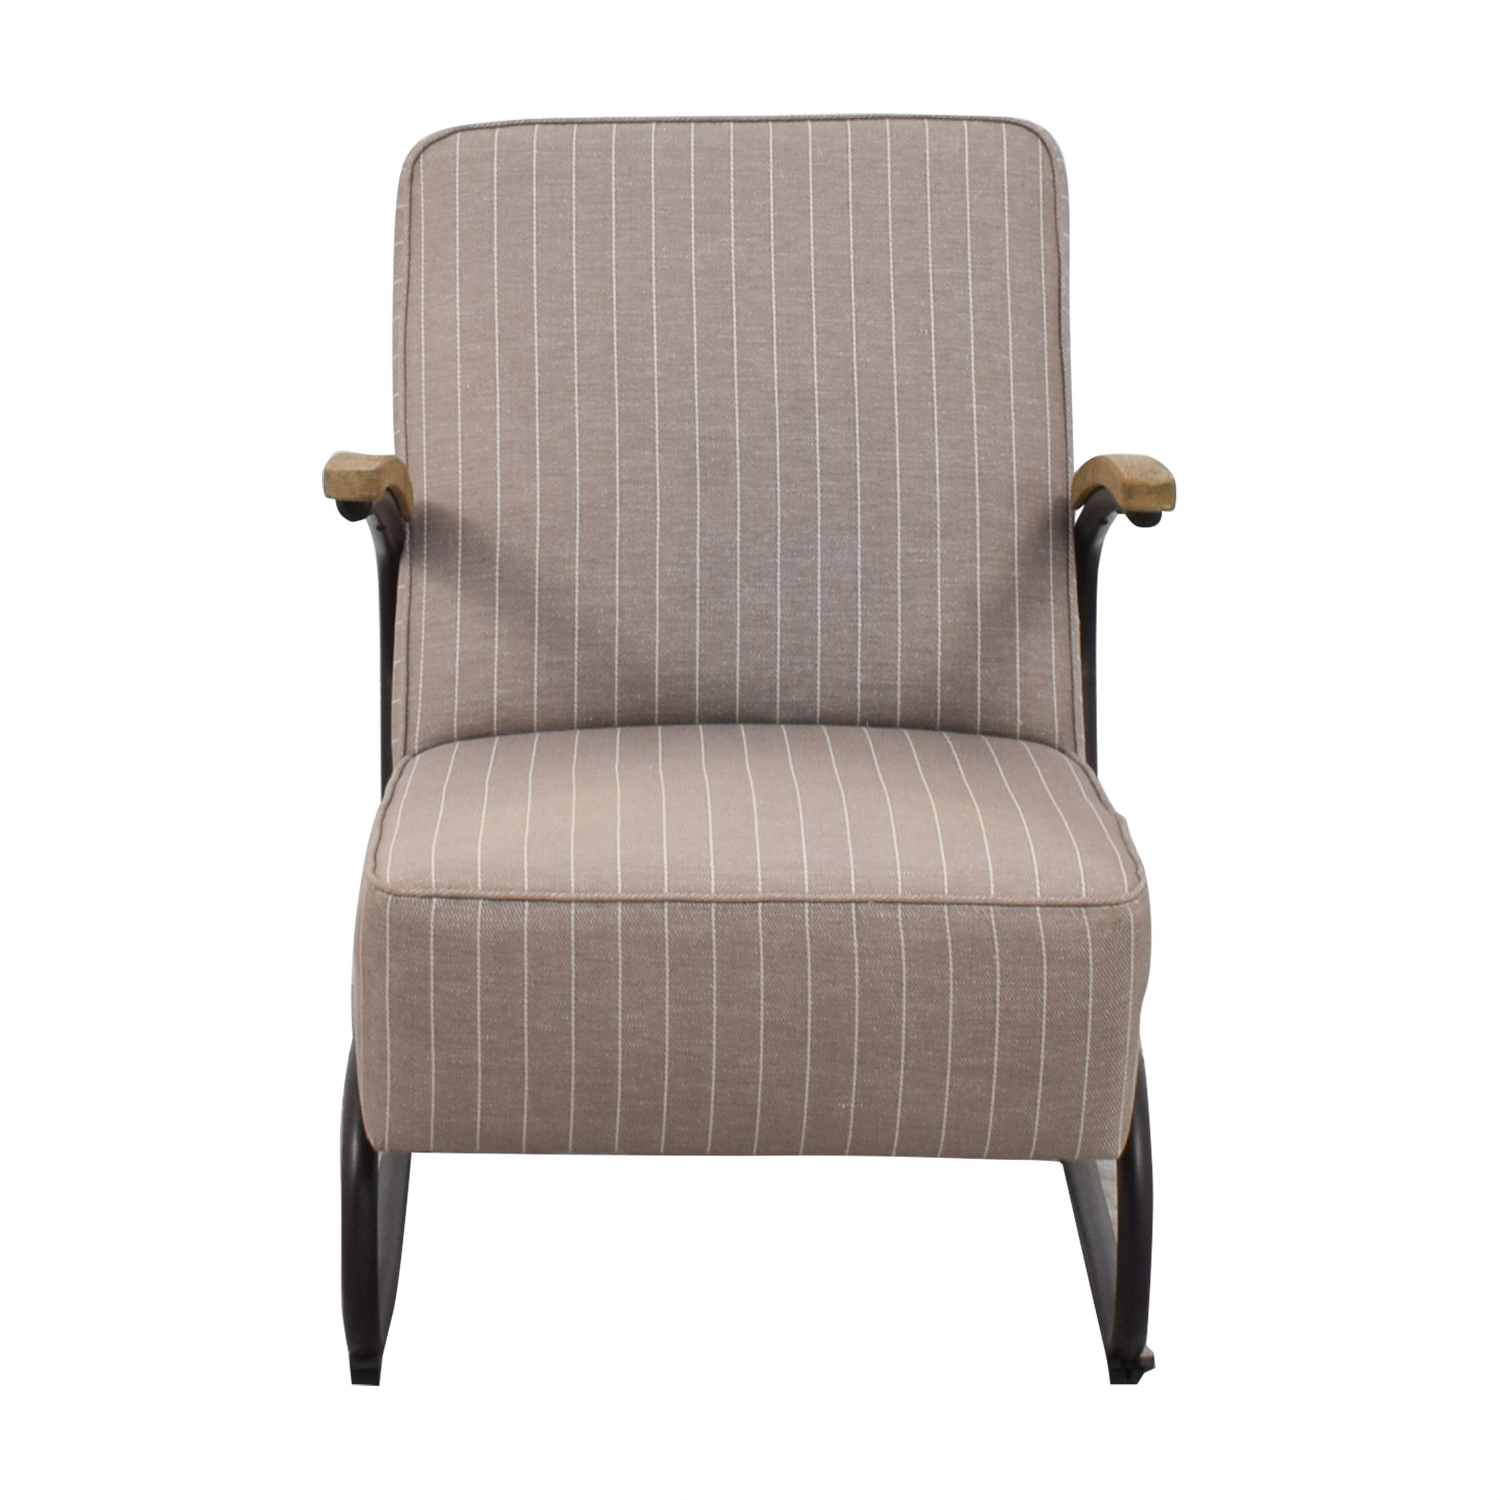 Awesome 90 Off Beige And White Pinstripe Industrial Modern Arm Chair Chairs Unemploymentrelief Wooden Chair Designs For Living Room Unemploymentrelieforg